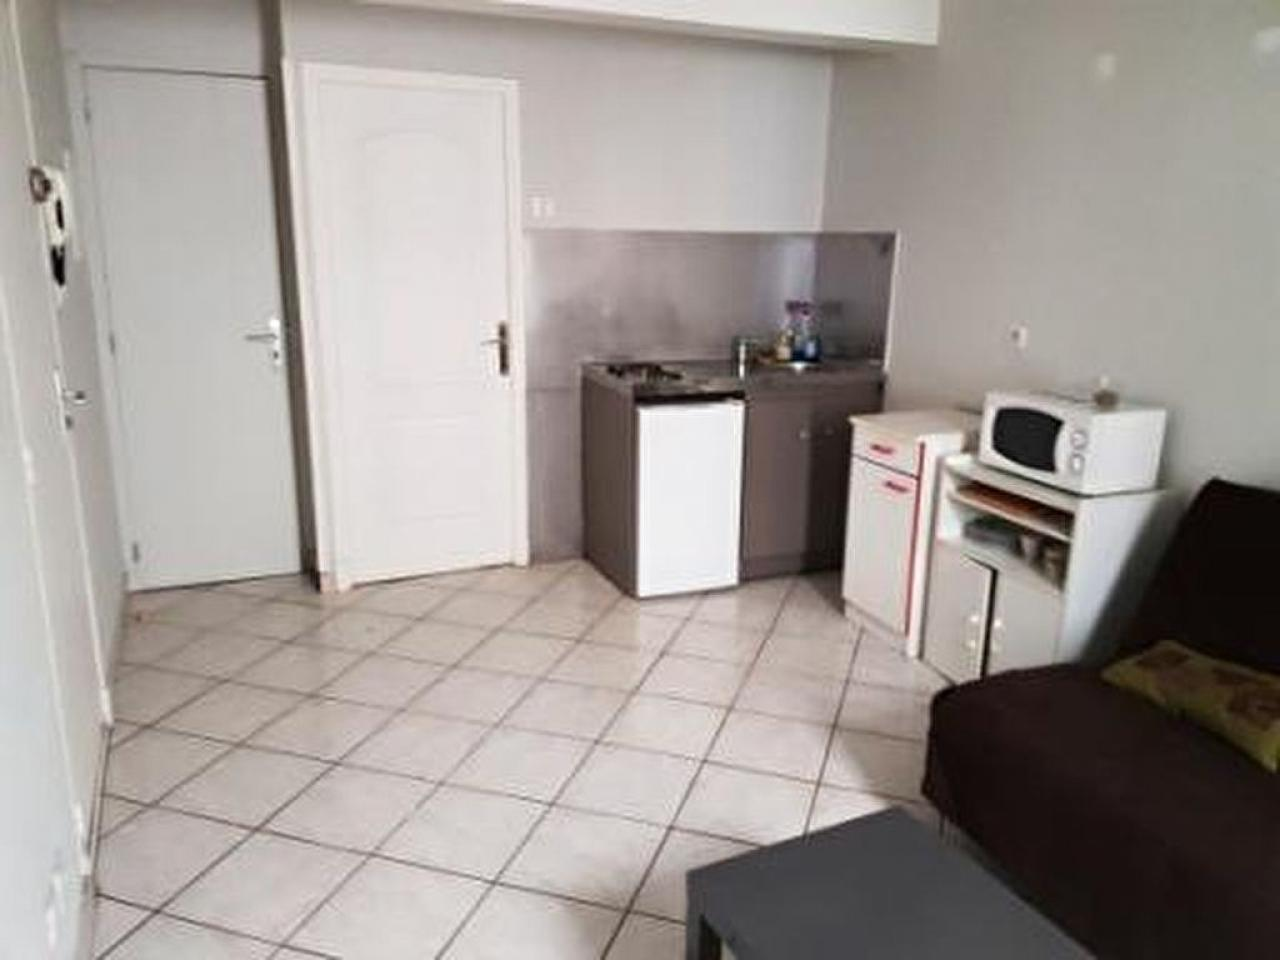 Apartment CARCASSONNE | 310 € / month